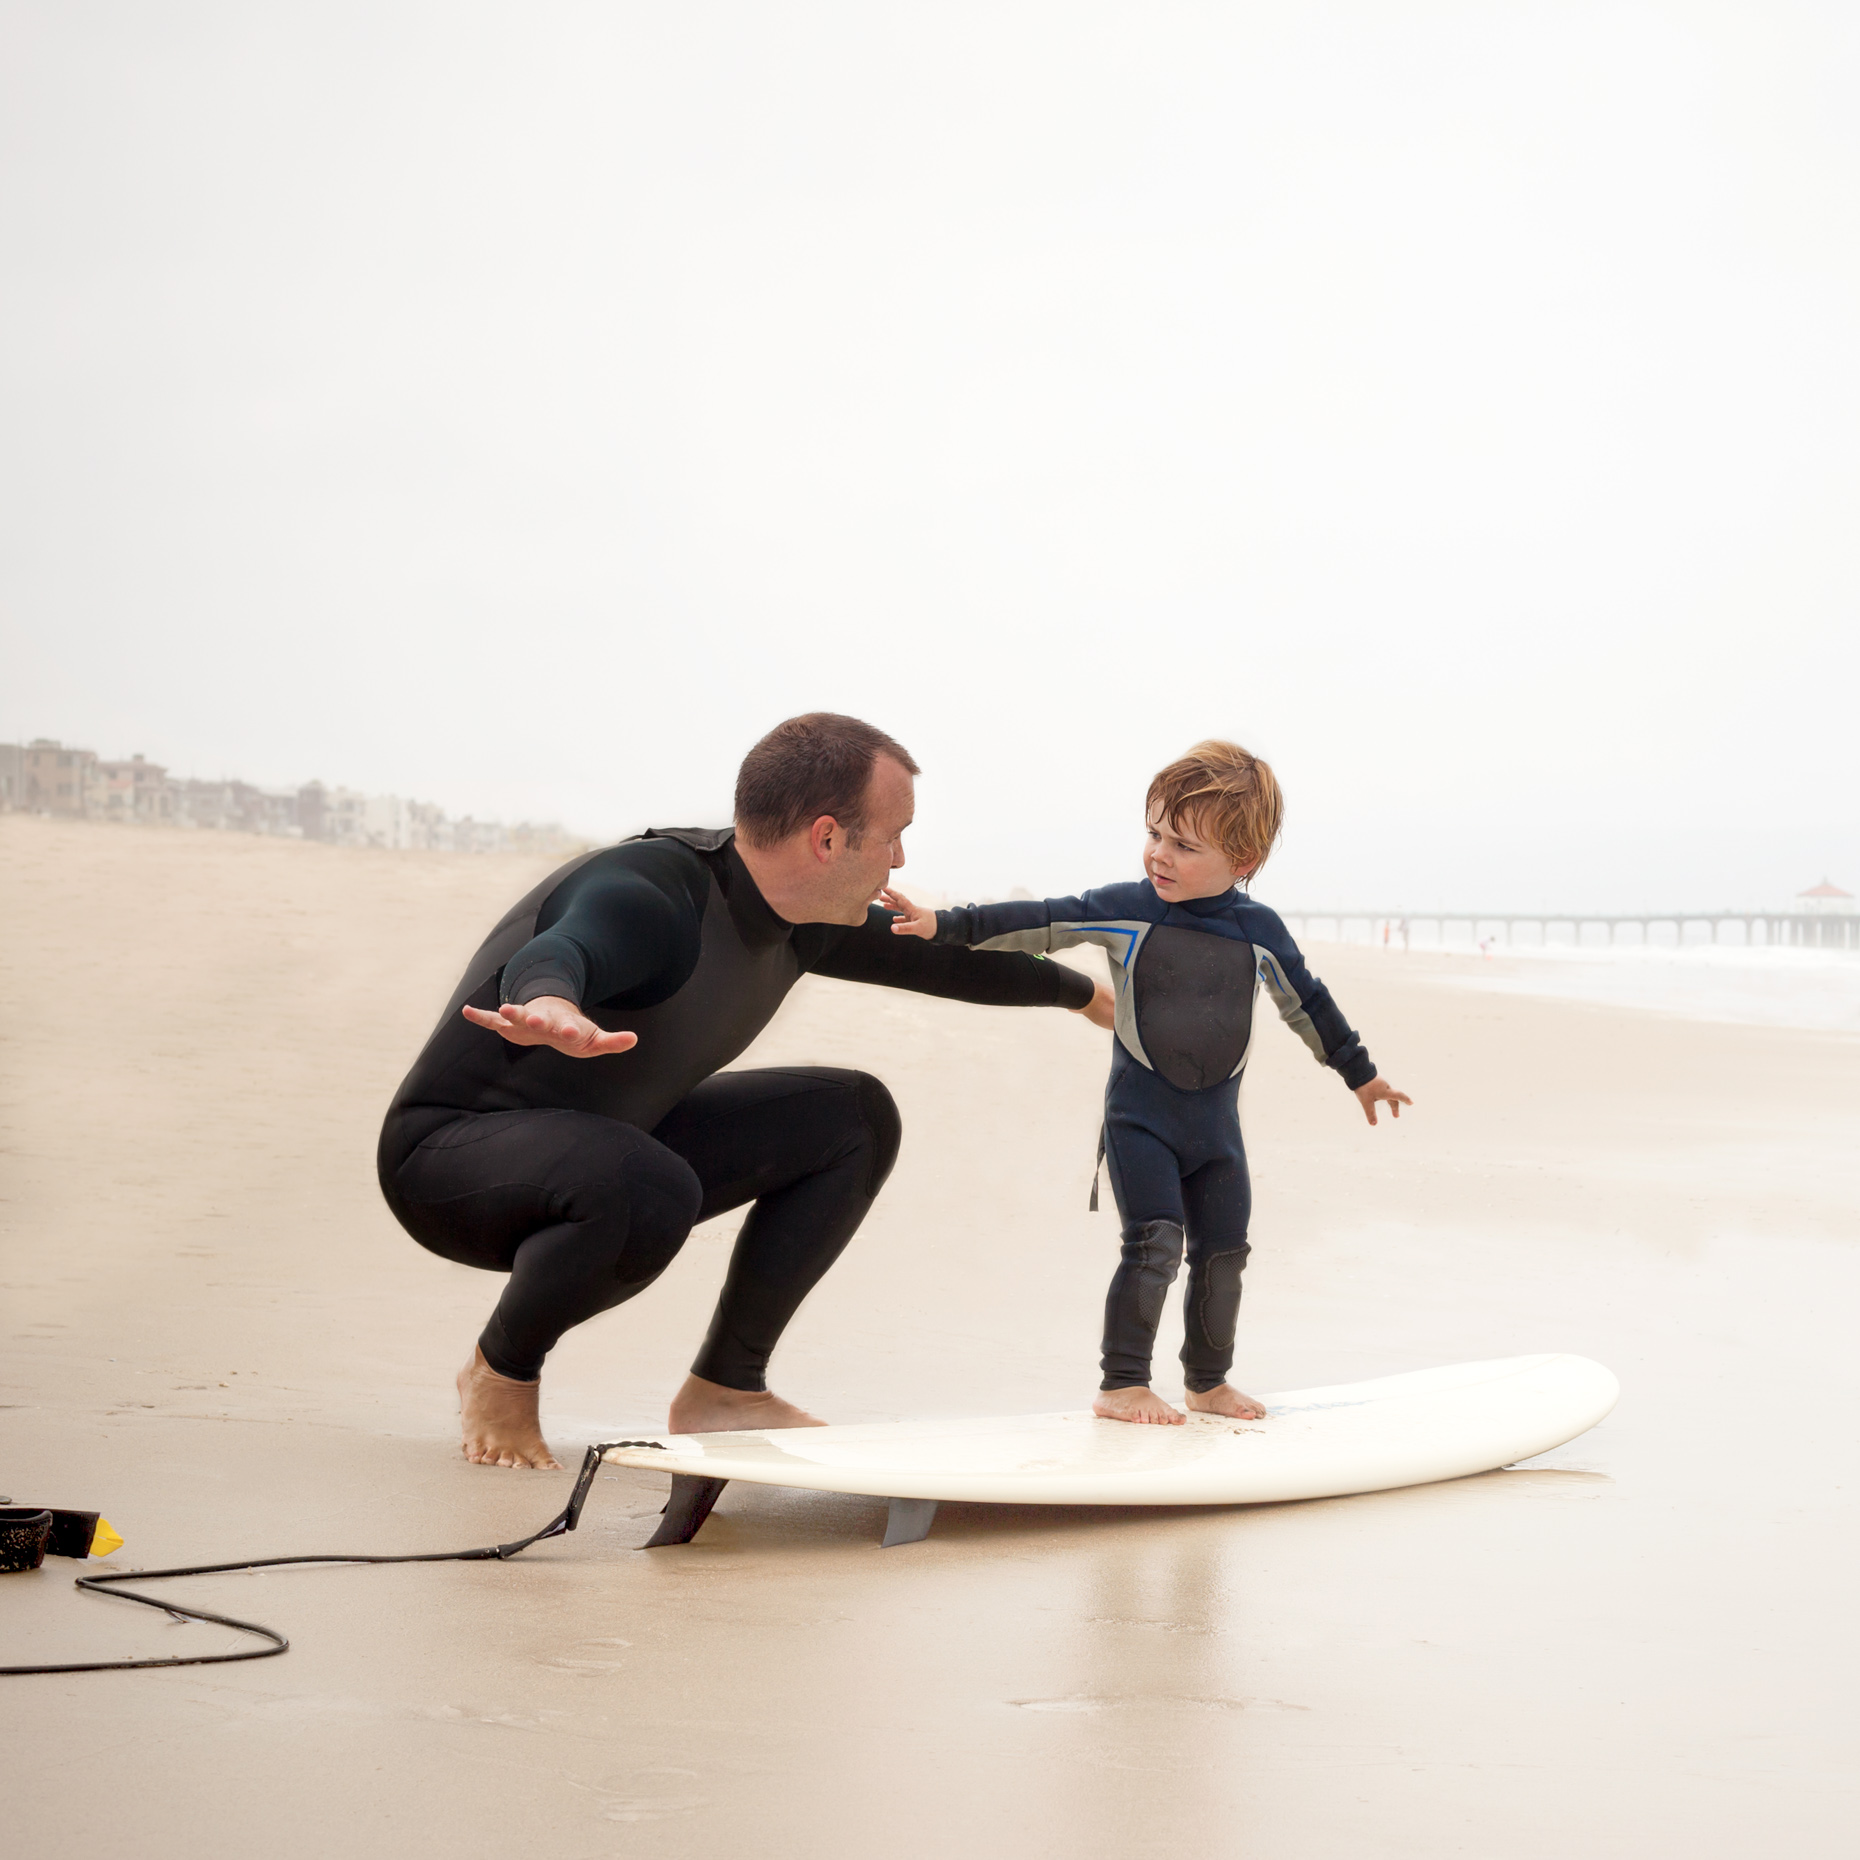 SiriBerting, SiriBertingPhotography,  Families, Quality Time, Father Son, Surf